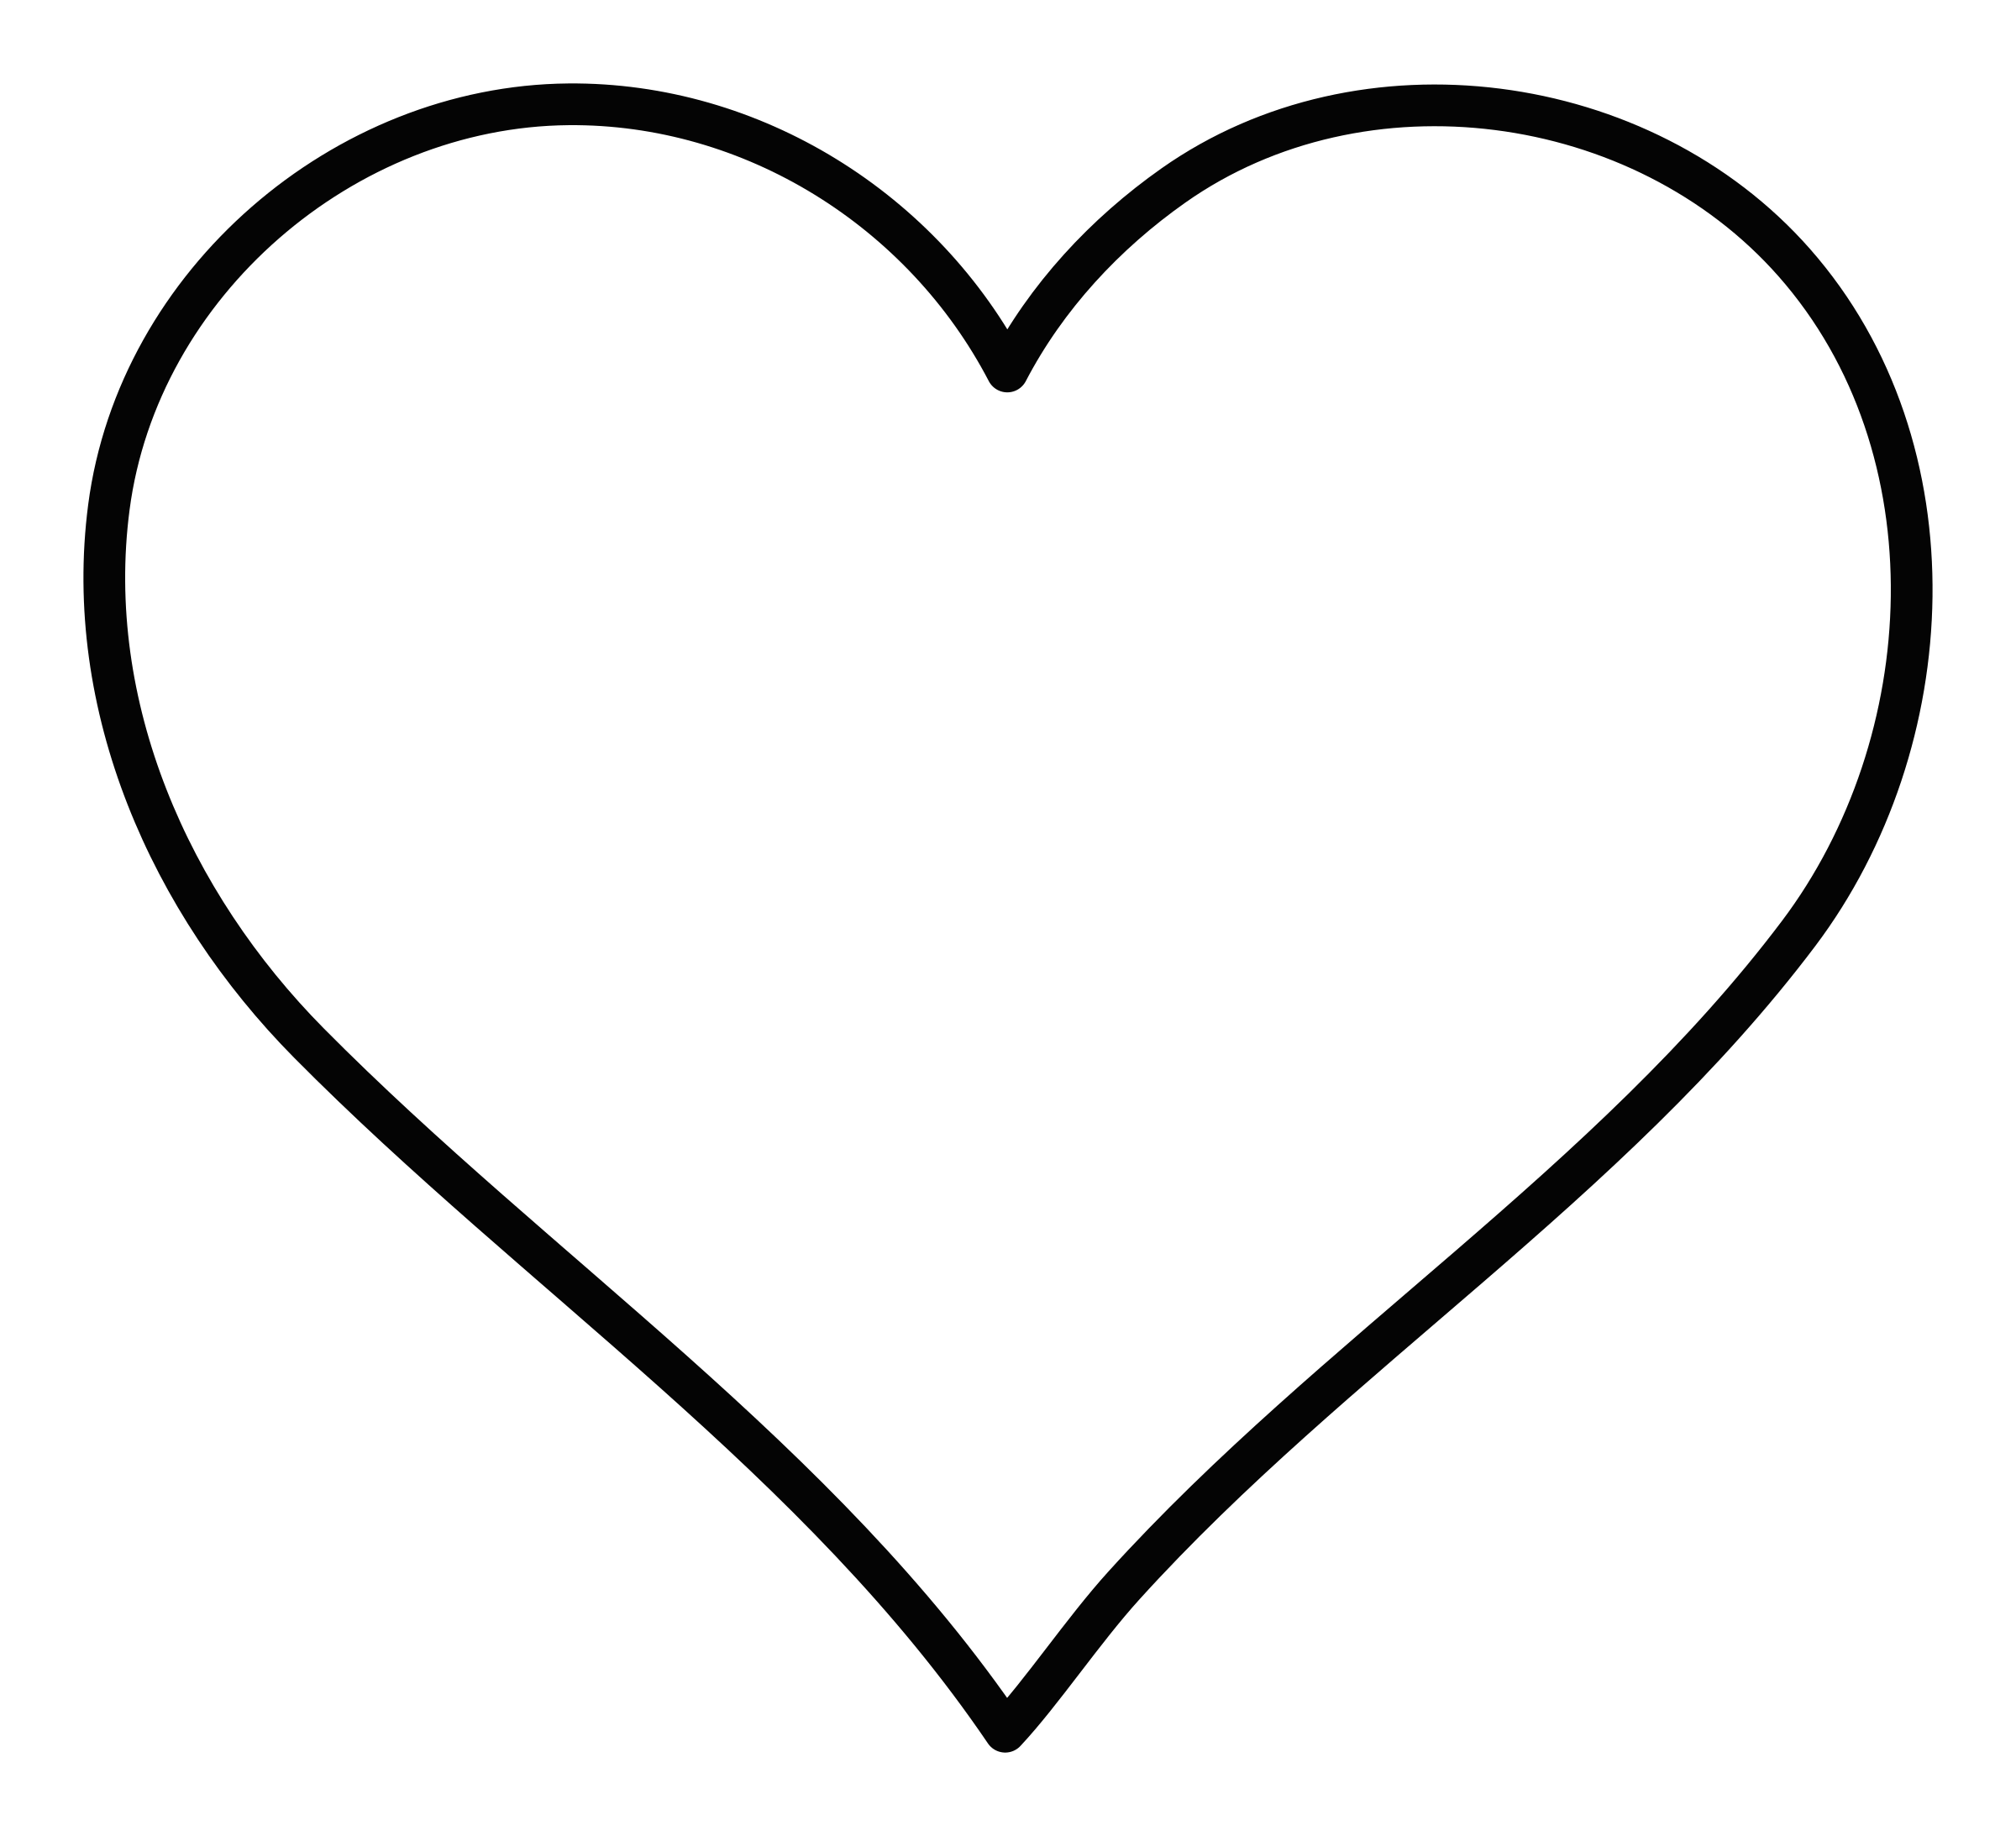 Stickpng. Heart shape png transparent clipart black and white stock